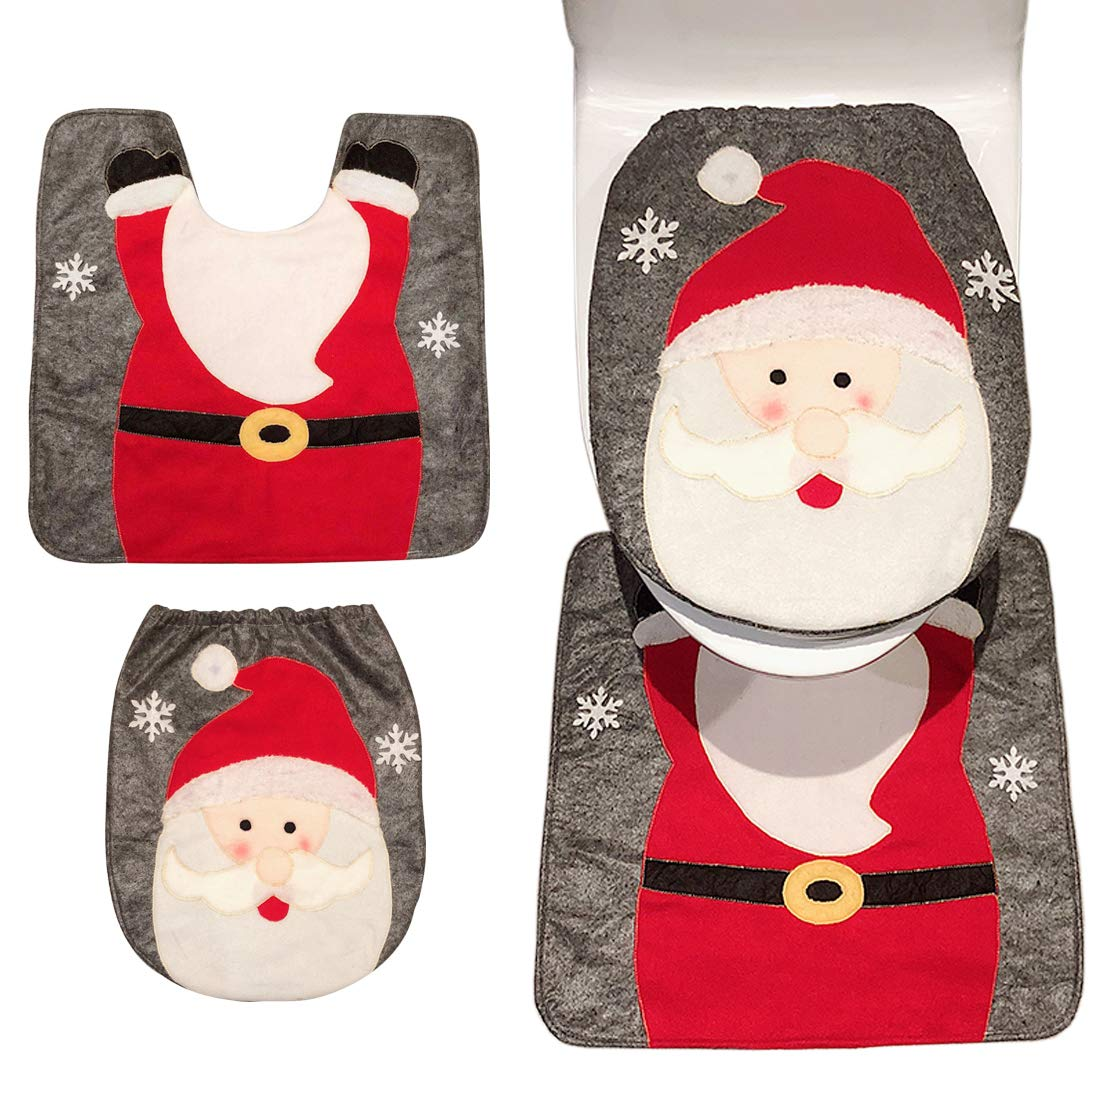 Christmas Decoration Santa Toilet Seat Cover & Rug Set, 2018 Festival Home Bathroom Decor Accessories - Reindeer MansWill